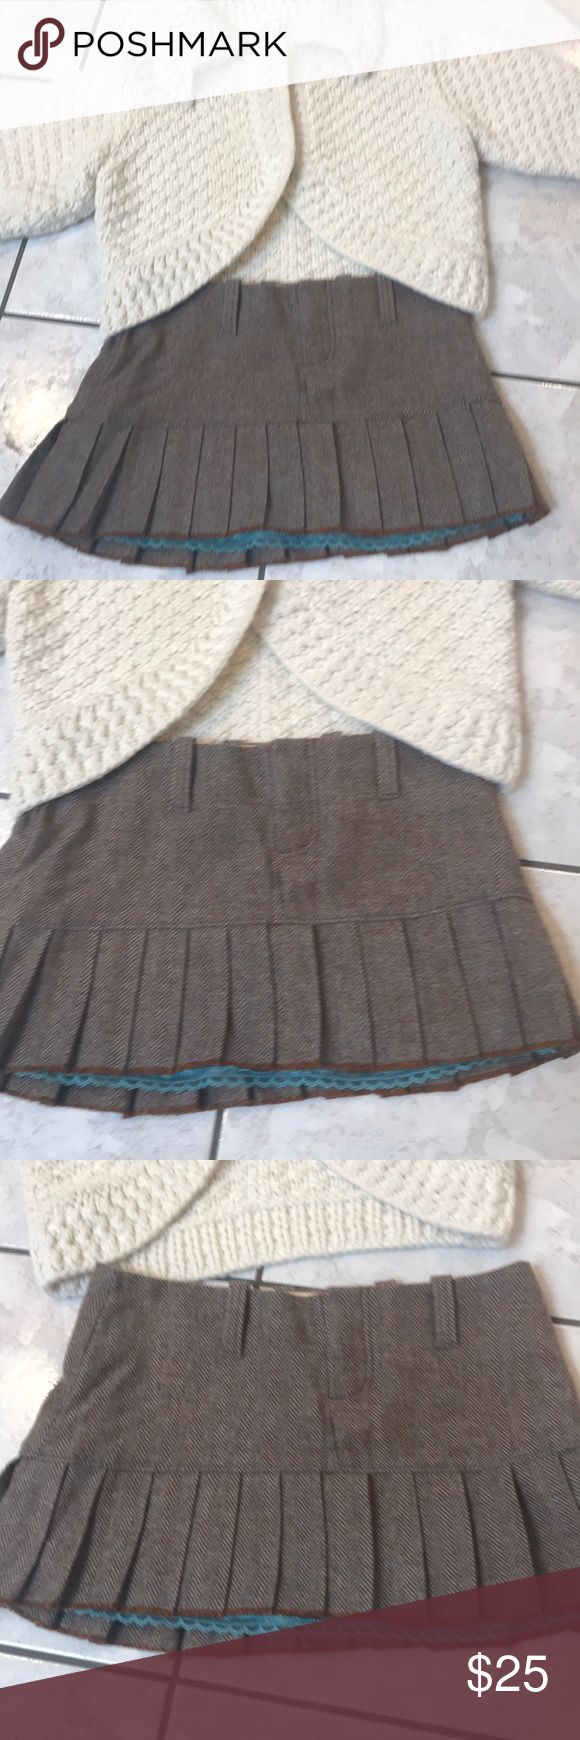 EUC tweed mini skirt w/ blue underneath by A&F CLASSIC MEETS FUNKY AND FABULOUS WITH THIS PLEATED LOW RISE MINI SKIRT IN A BROWN AND LIGHT BLUE HERRINGBONE! LOVE THIS SKIRT TO DEATH! Have in MULTIPLE SIZES - THIS ONE DID NOT GET WORN !! So COME ON SOMEONE!THIS IS TOO CUTE TO IGNORE Abercrombie & Fitch Skirts Mini